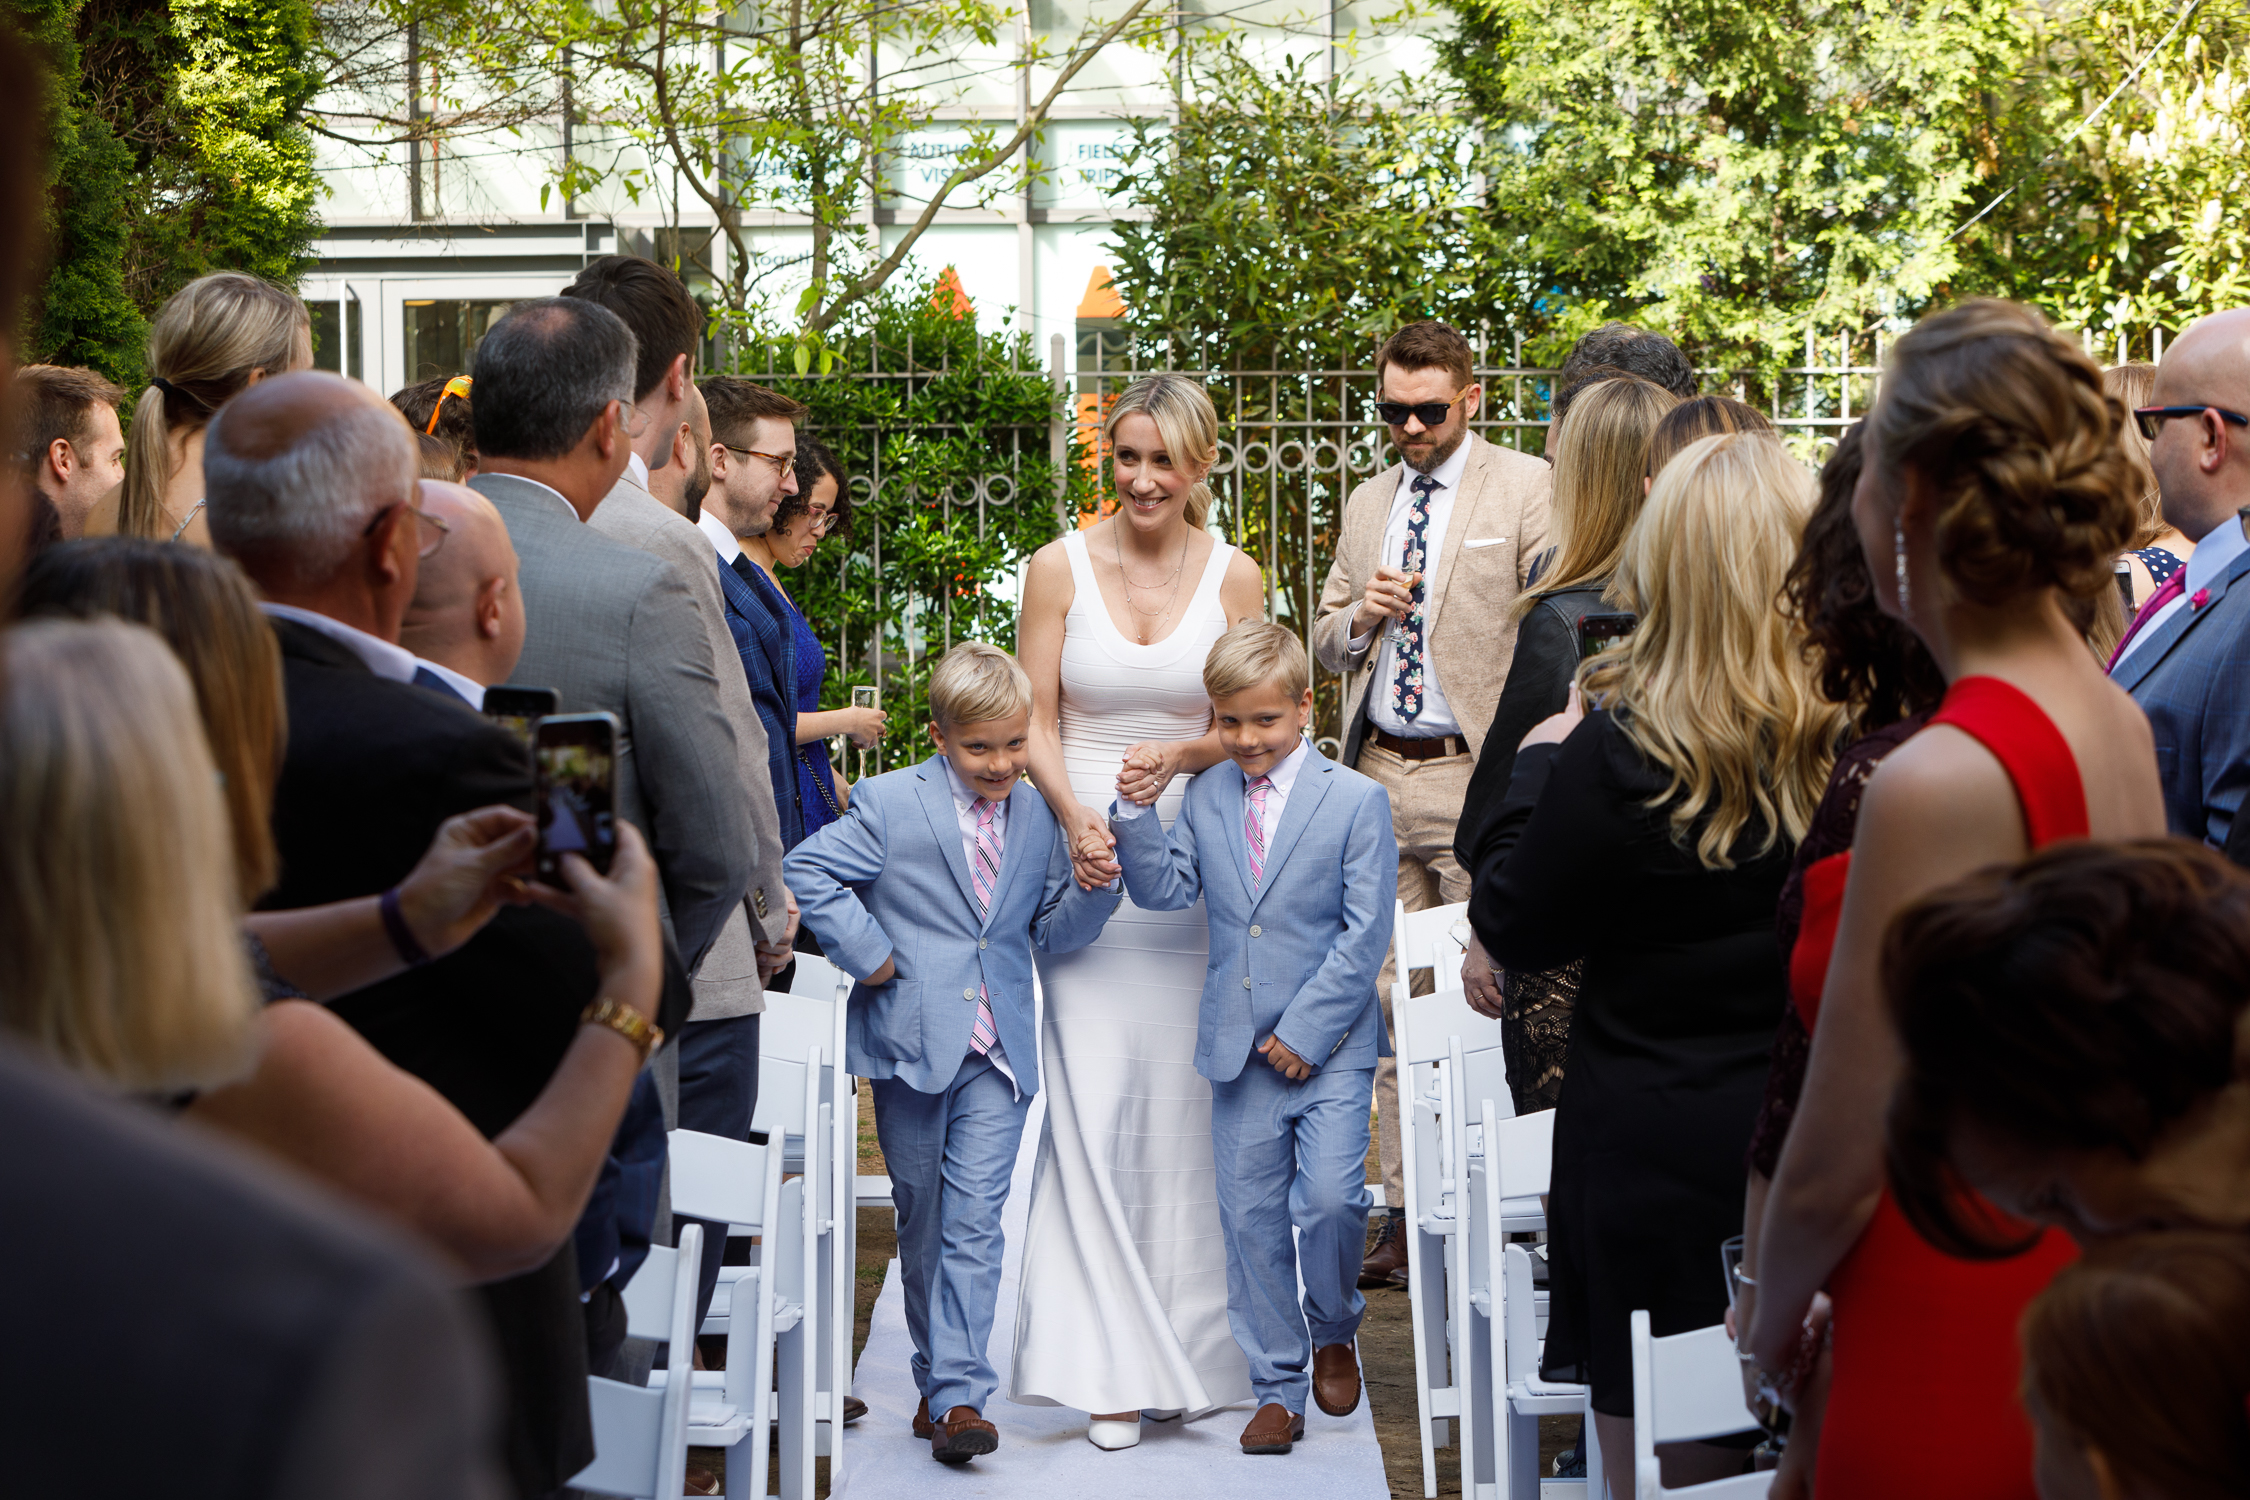 Brooklyn Wedding Photographer _ Jonathan Heisler _ 5112019 _005.jpg